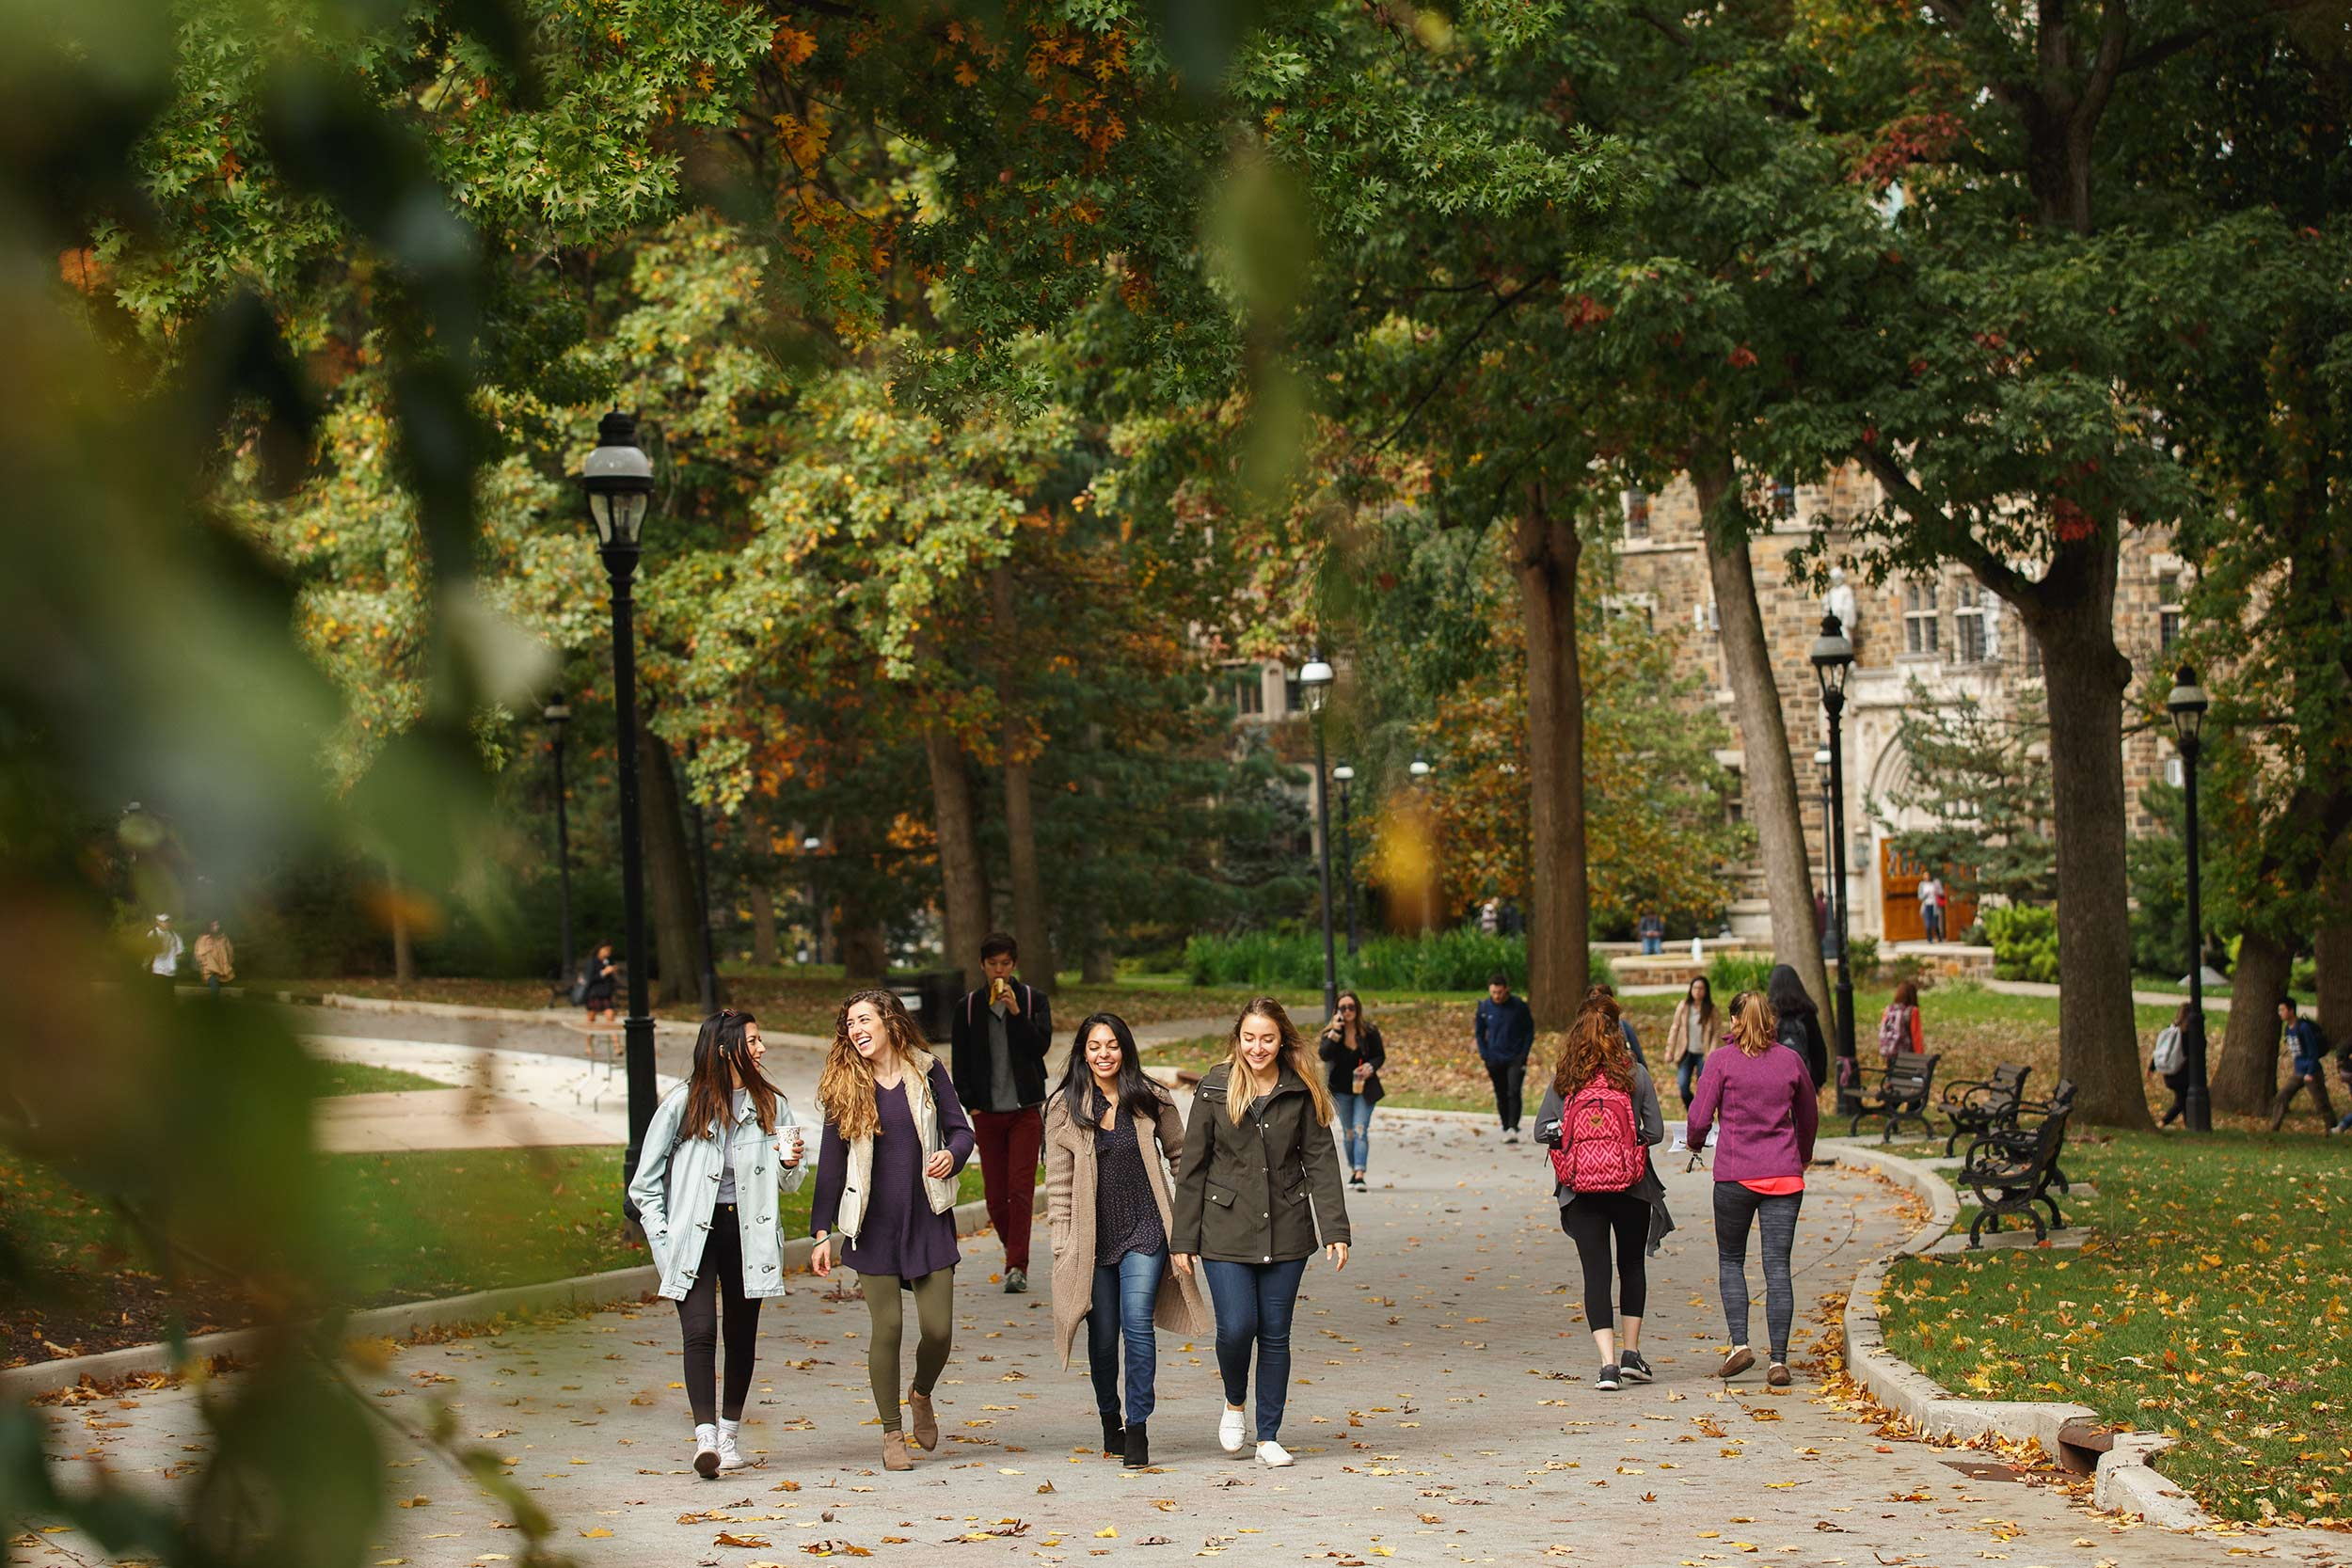 students_walking_education_photographer_higher_ed_by_matt_stanley_0194